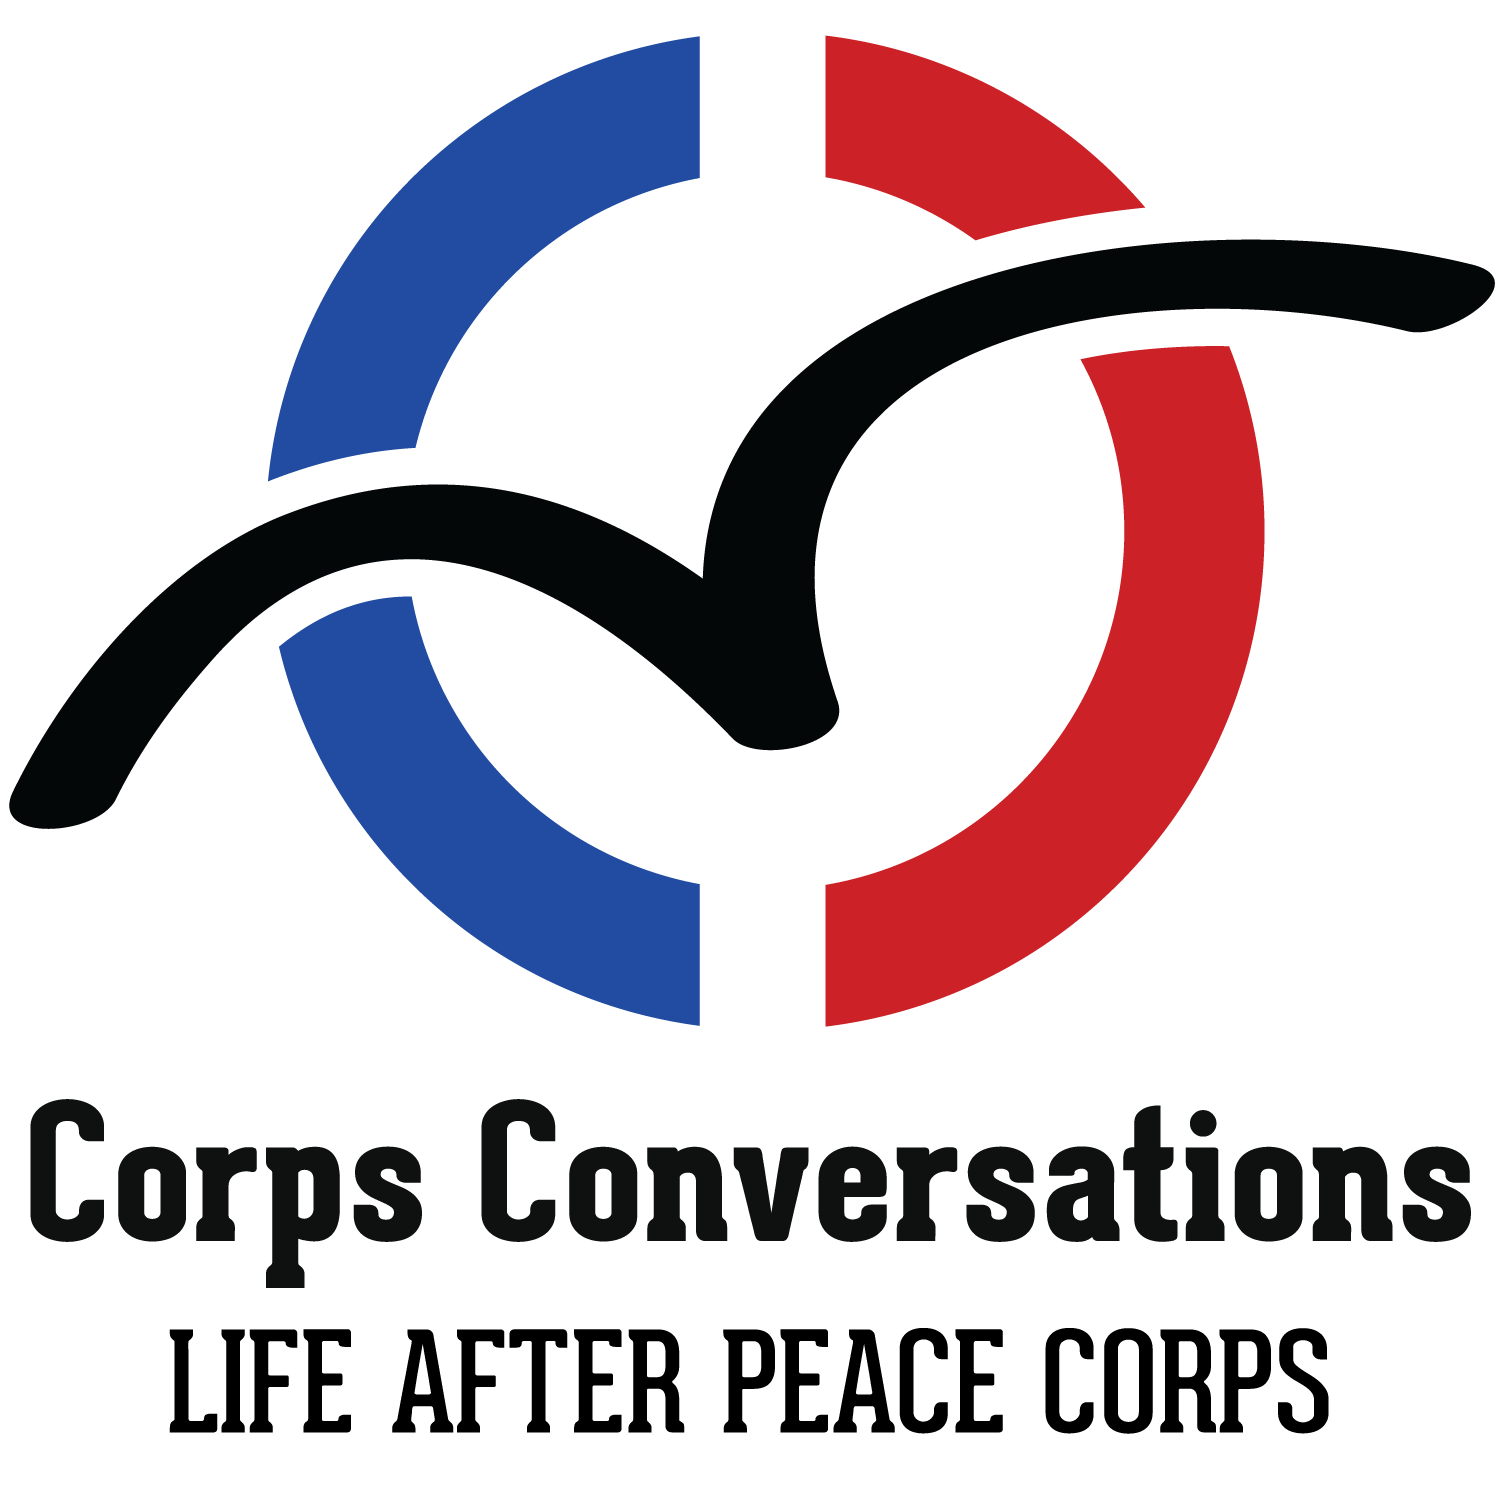 Corps Conversations: Life After Peace Corps Podcast with RPCV Astrid Vinje